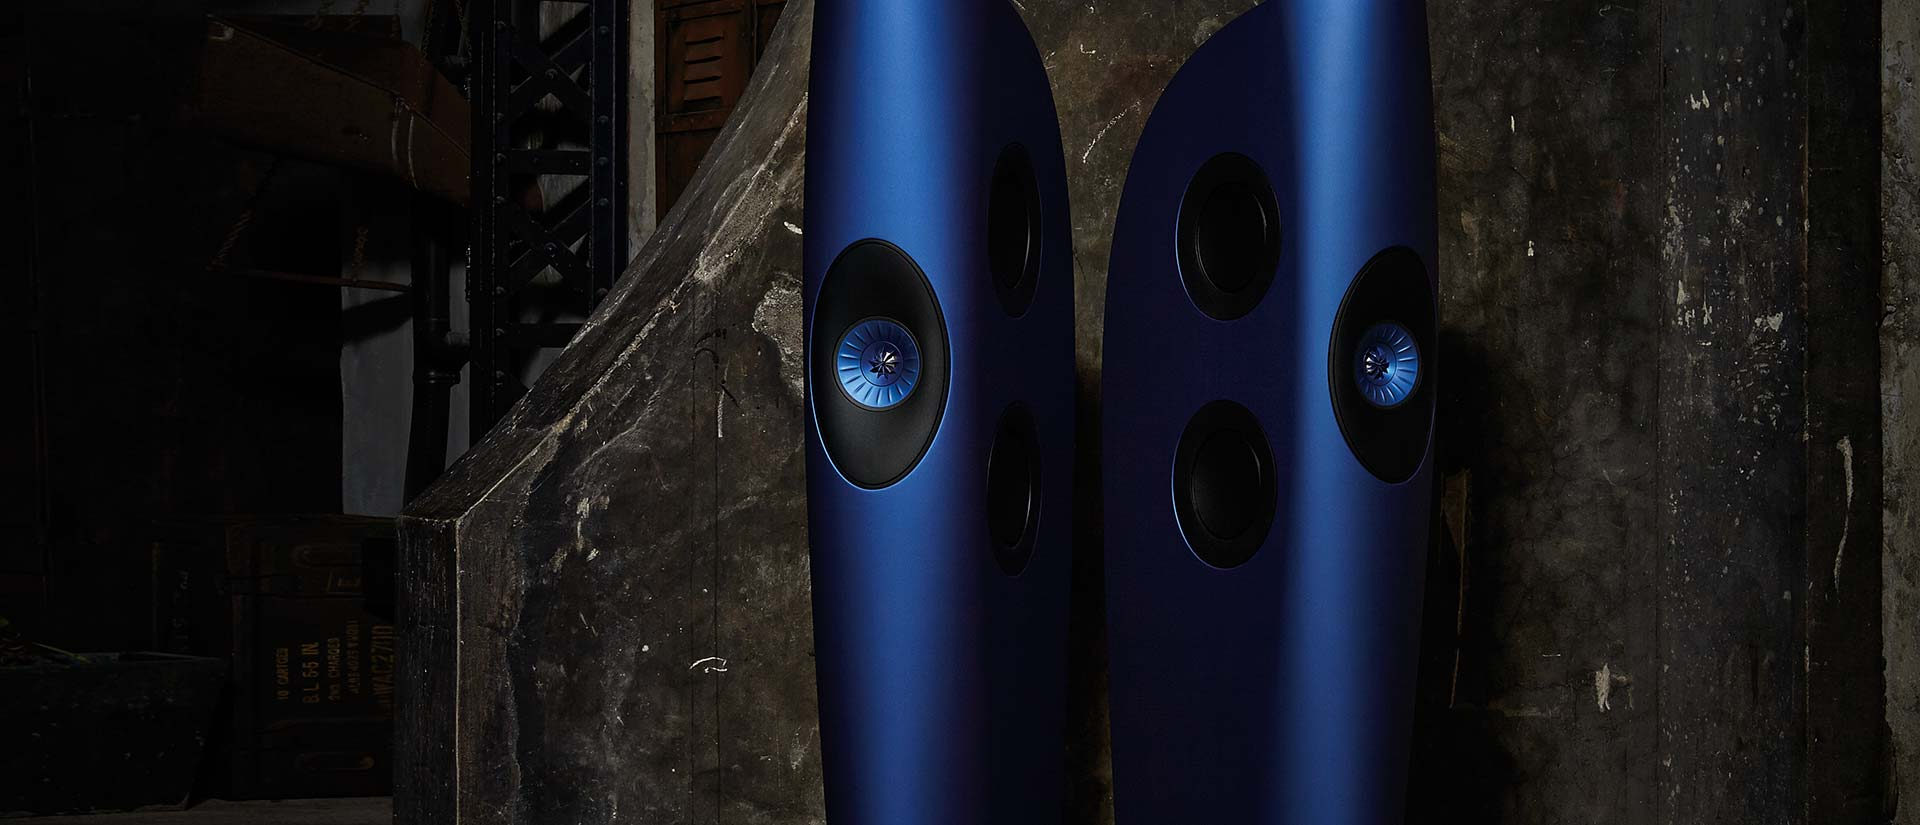 KEF Flagship Speakers